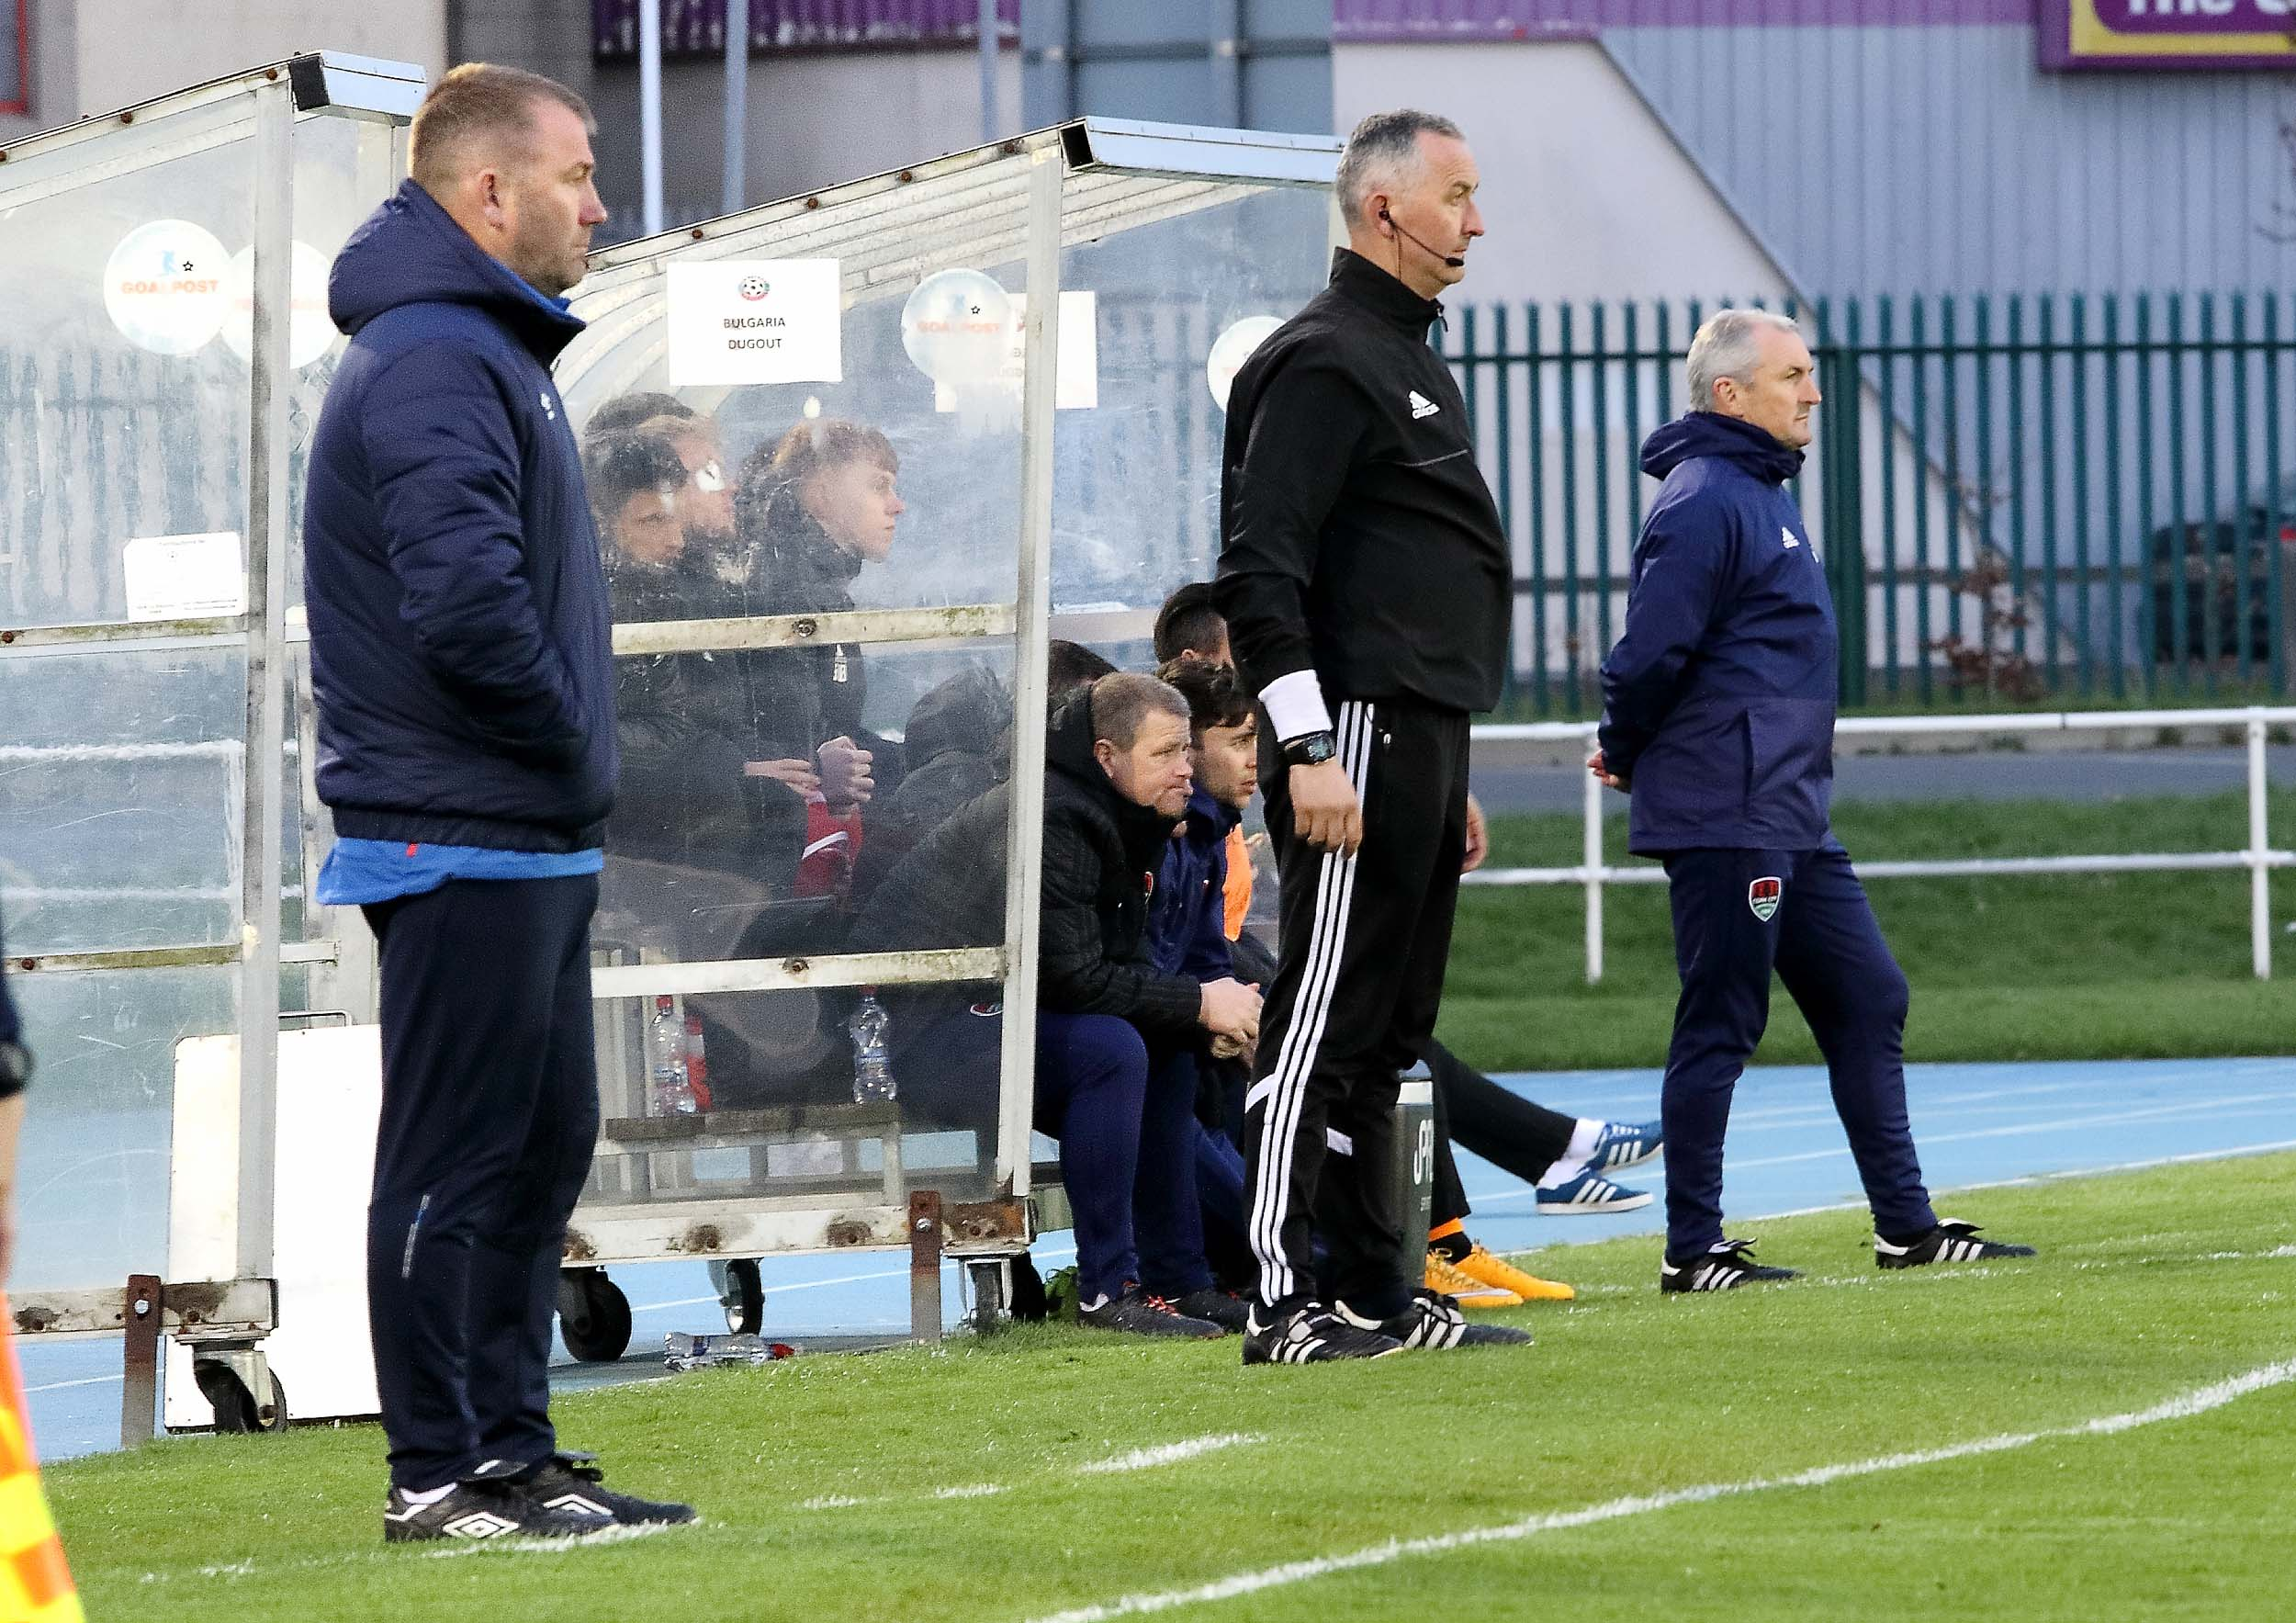 Waterford FC lose out away to St Pats